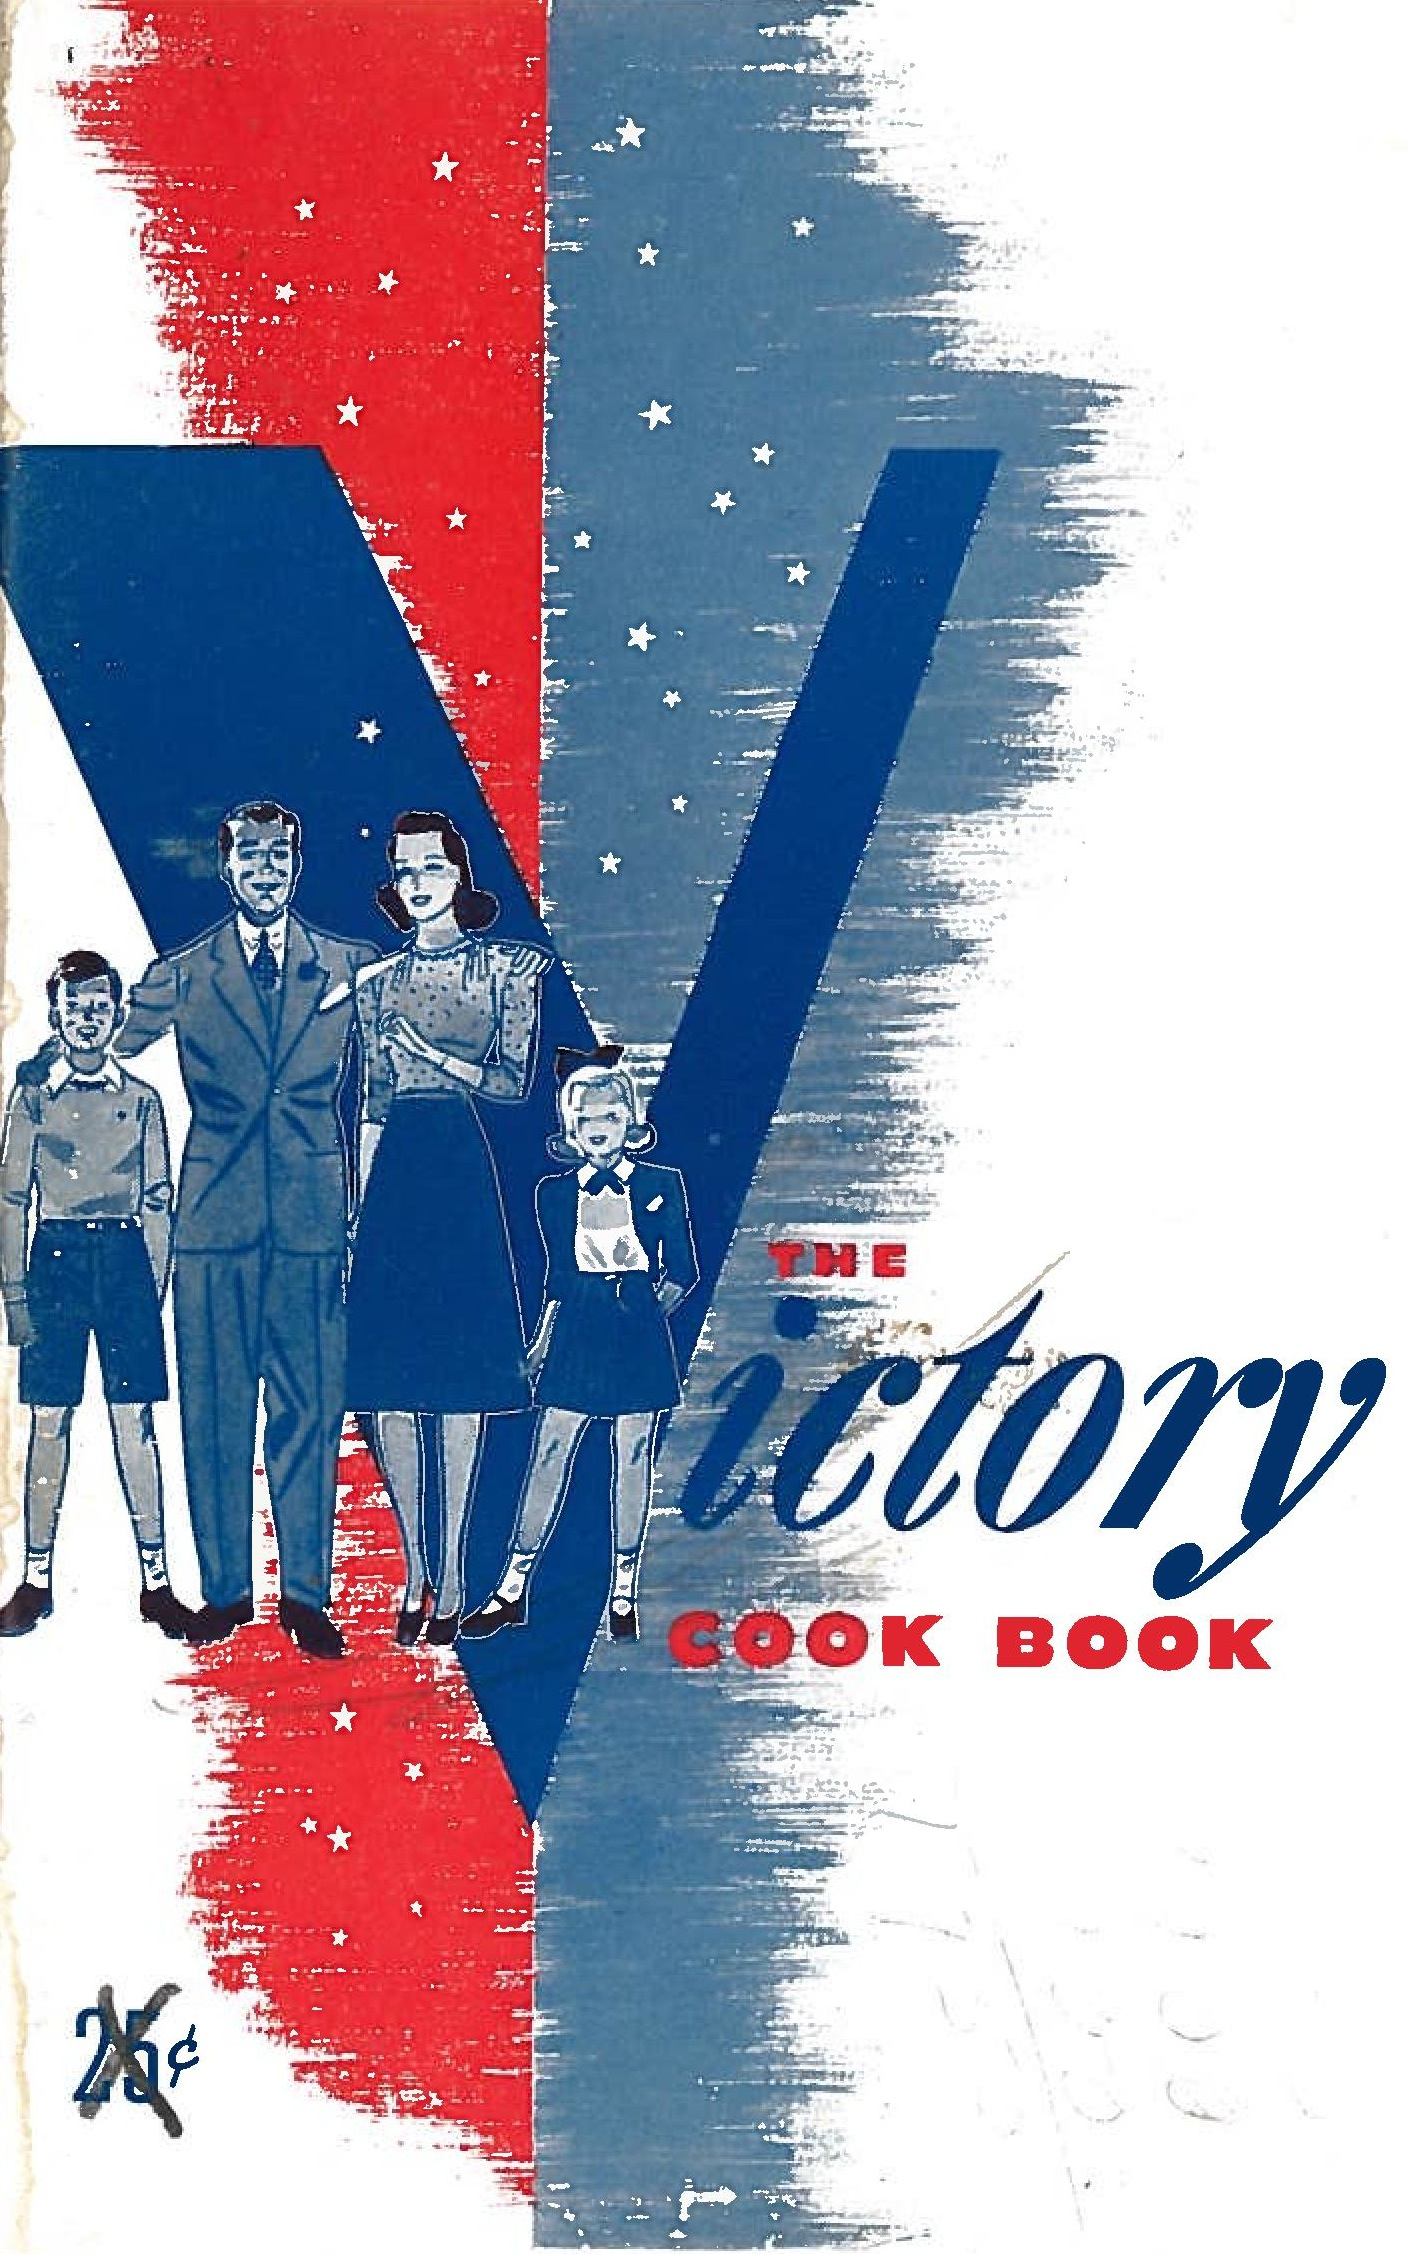 The cover of  The Victory Cookbook clearly shows what is trying to be preserved. We're talking about family. The ideal American family, two kids, professional husband, a woman who does not have to work, middle class, and white.